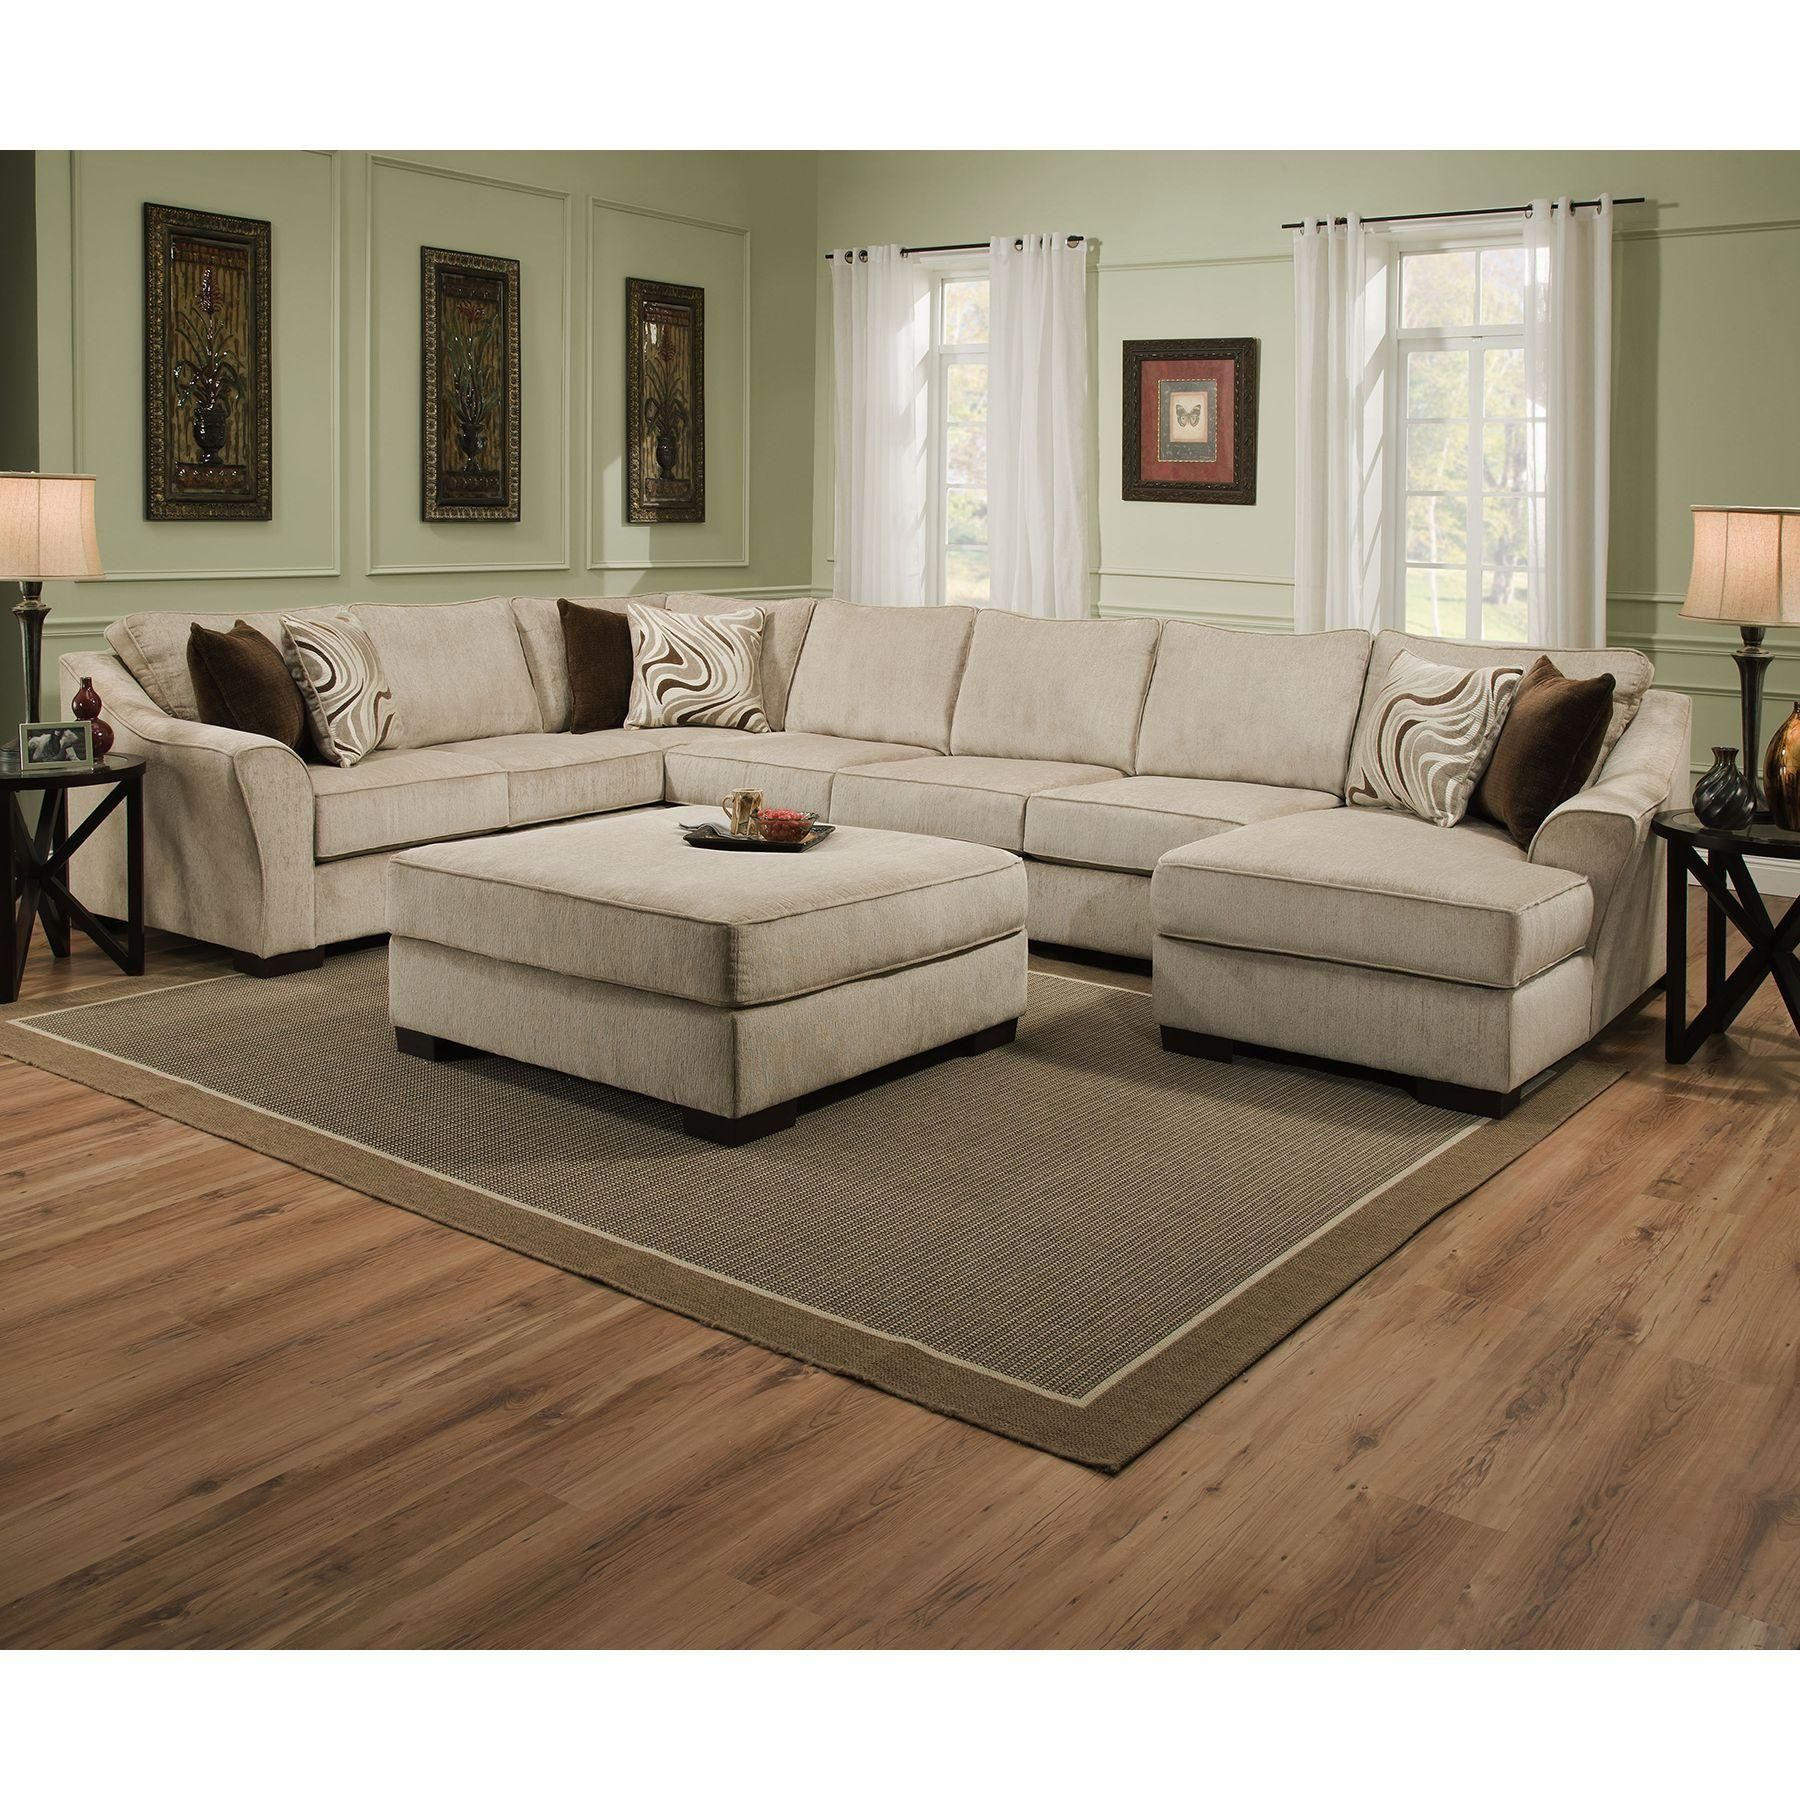 Furniture: Comfy Sectional Sofa in 2019 | Living room ...